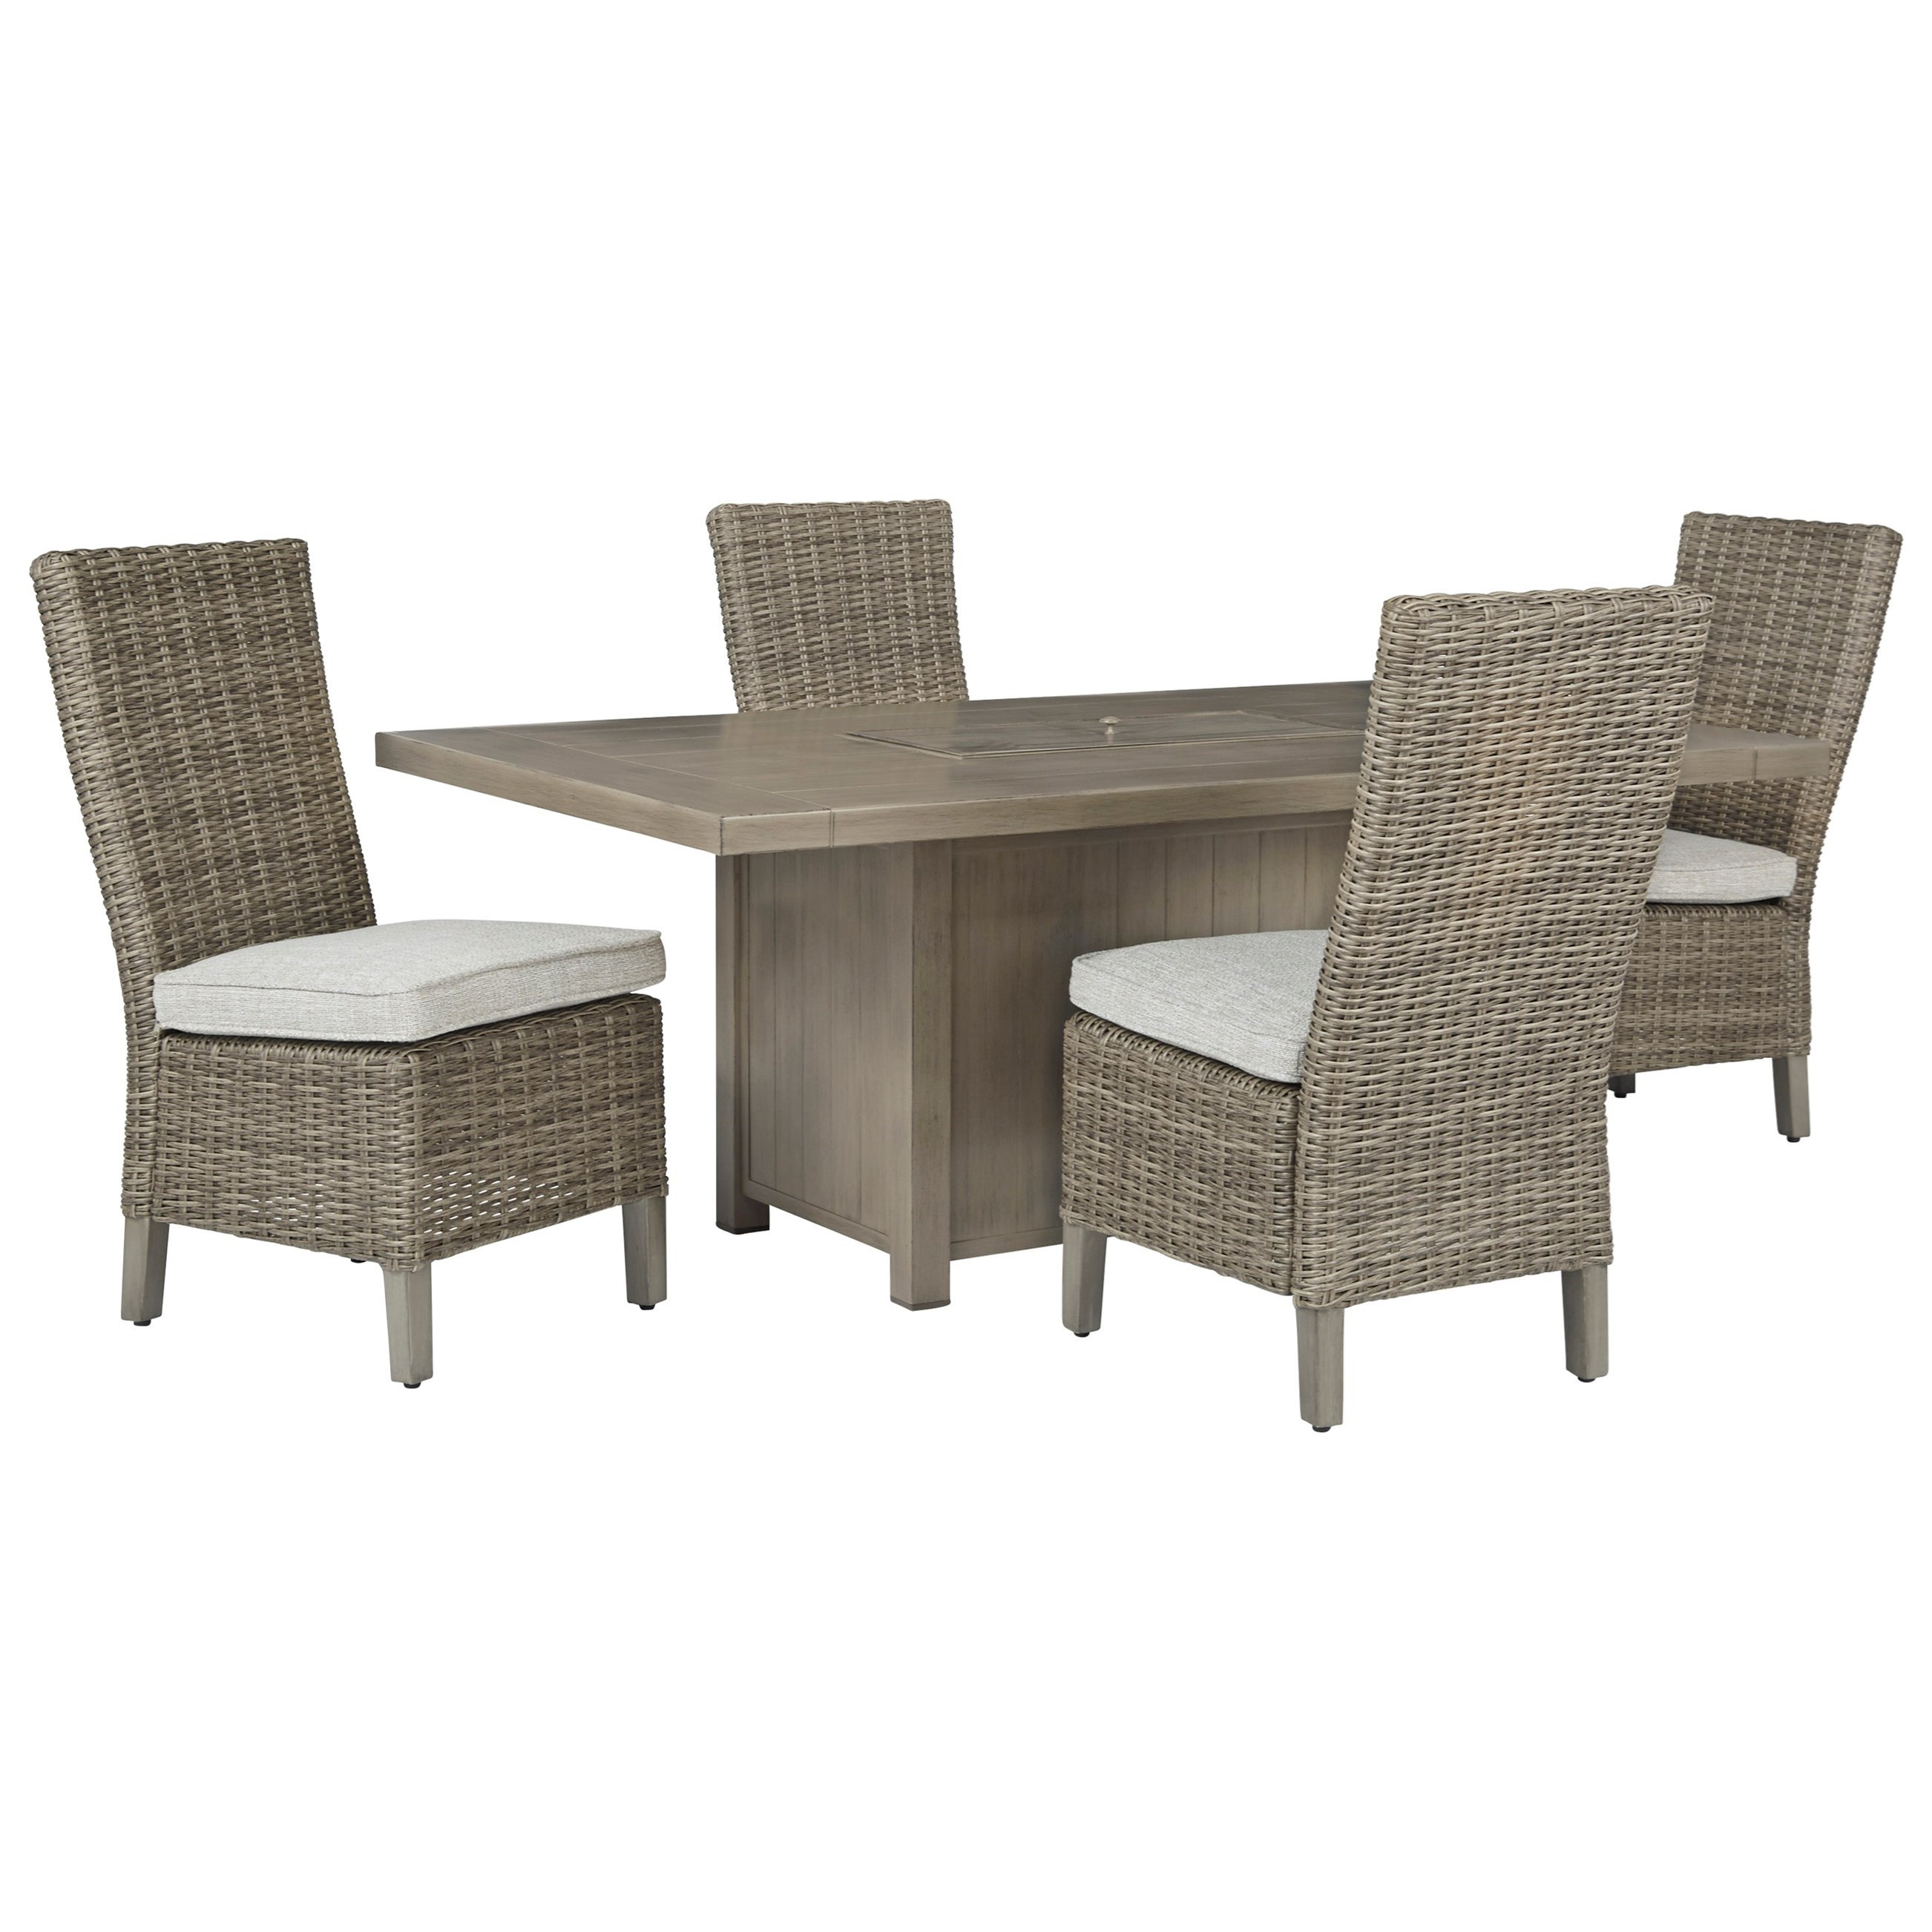 Windon Barn 5-Piece Rectangular Fire Pit Table Set by Signature Design by Ashley at Value City Furniture